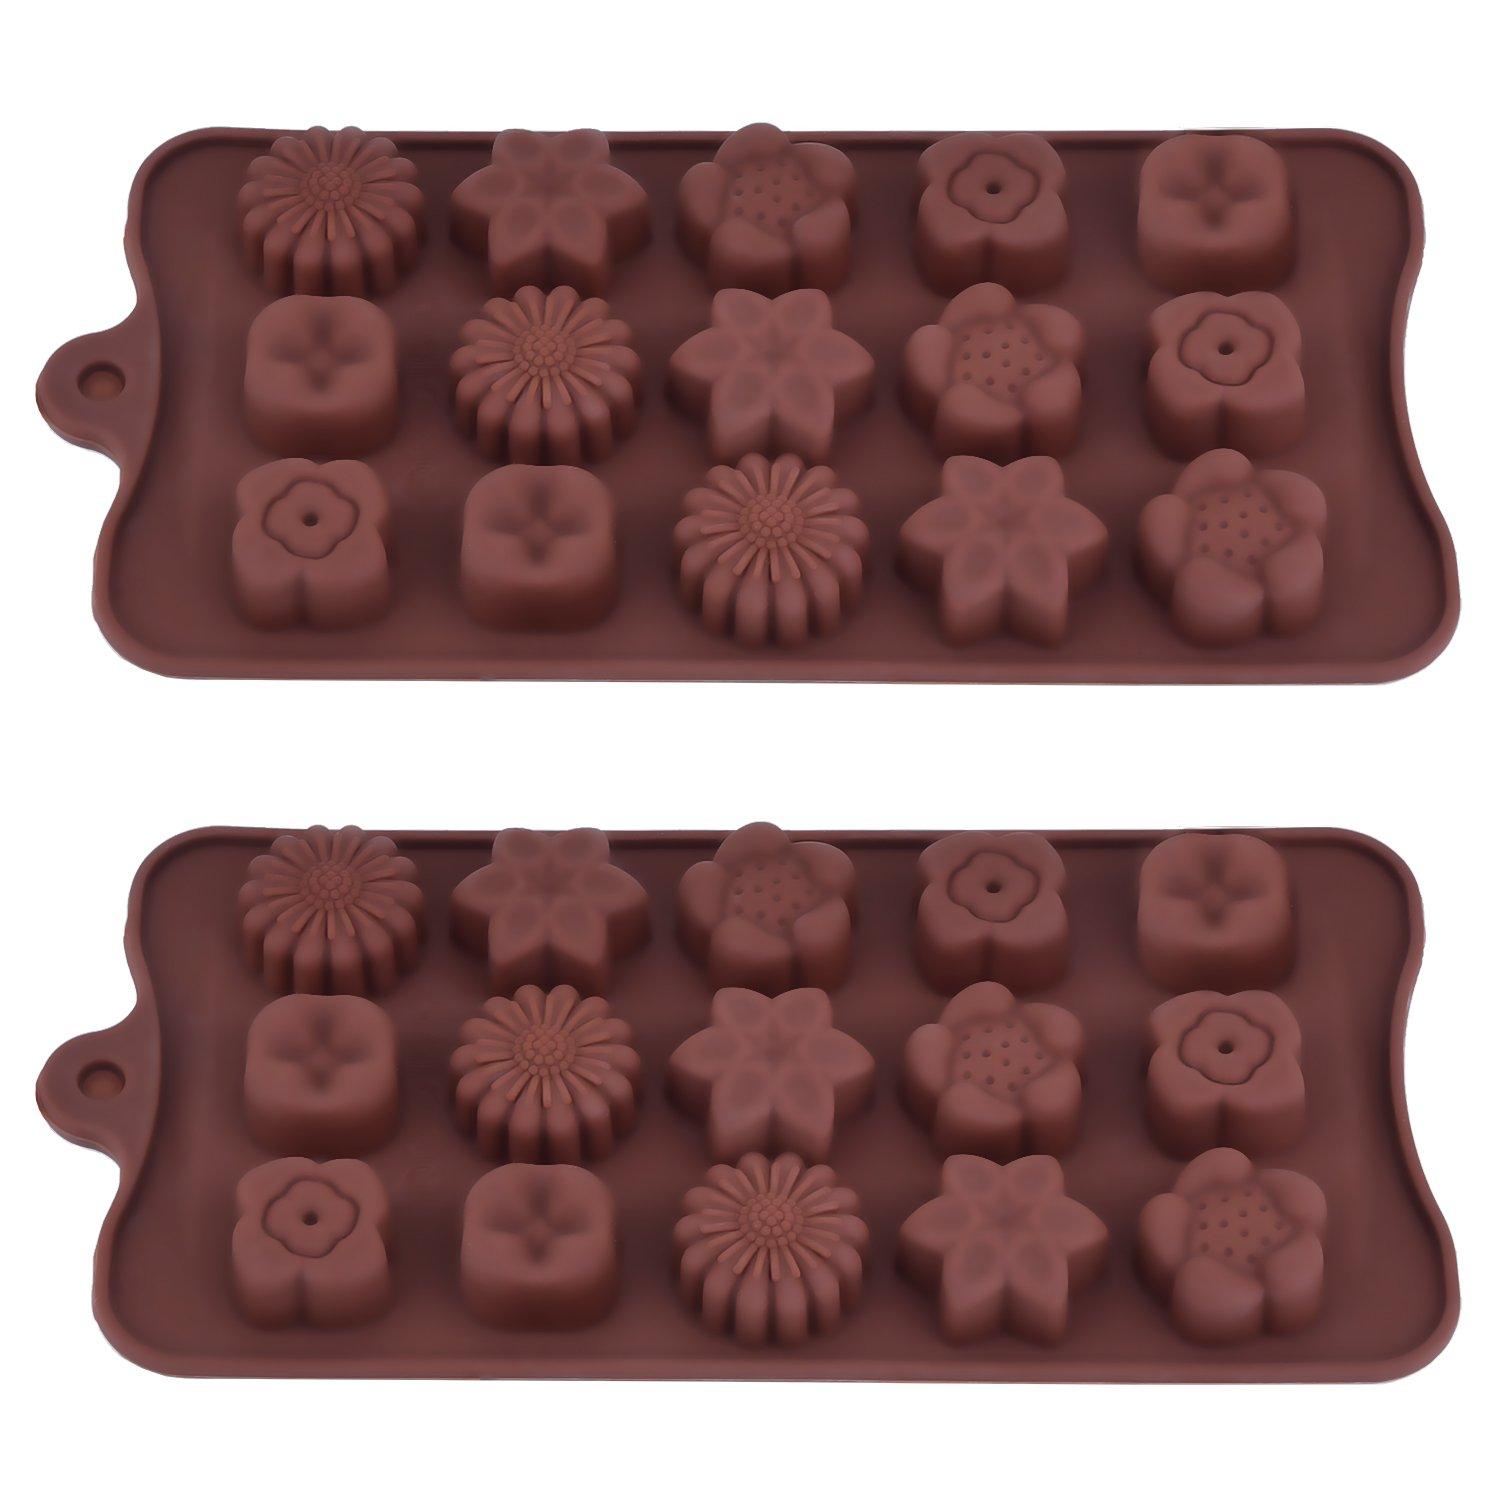 2 Pack Silicone Chocolate Molds Flowers Shape Cake Candy Mould Jelly Ice Tray for Handmade DIY Coffee